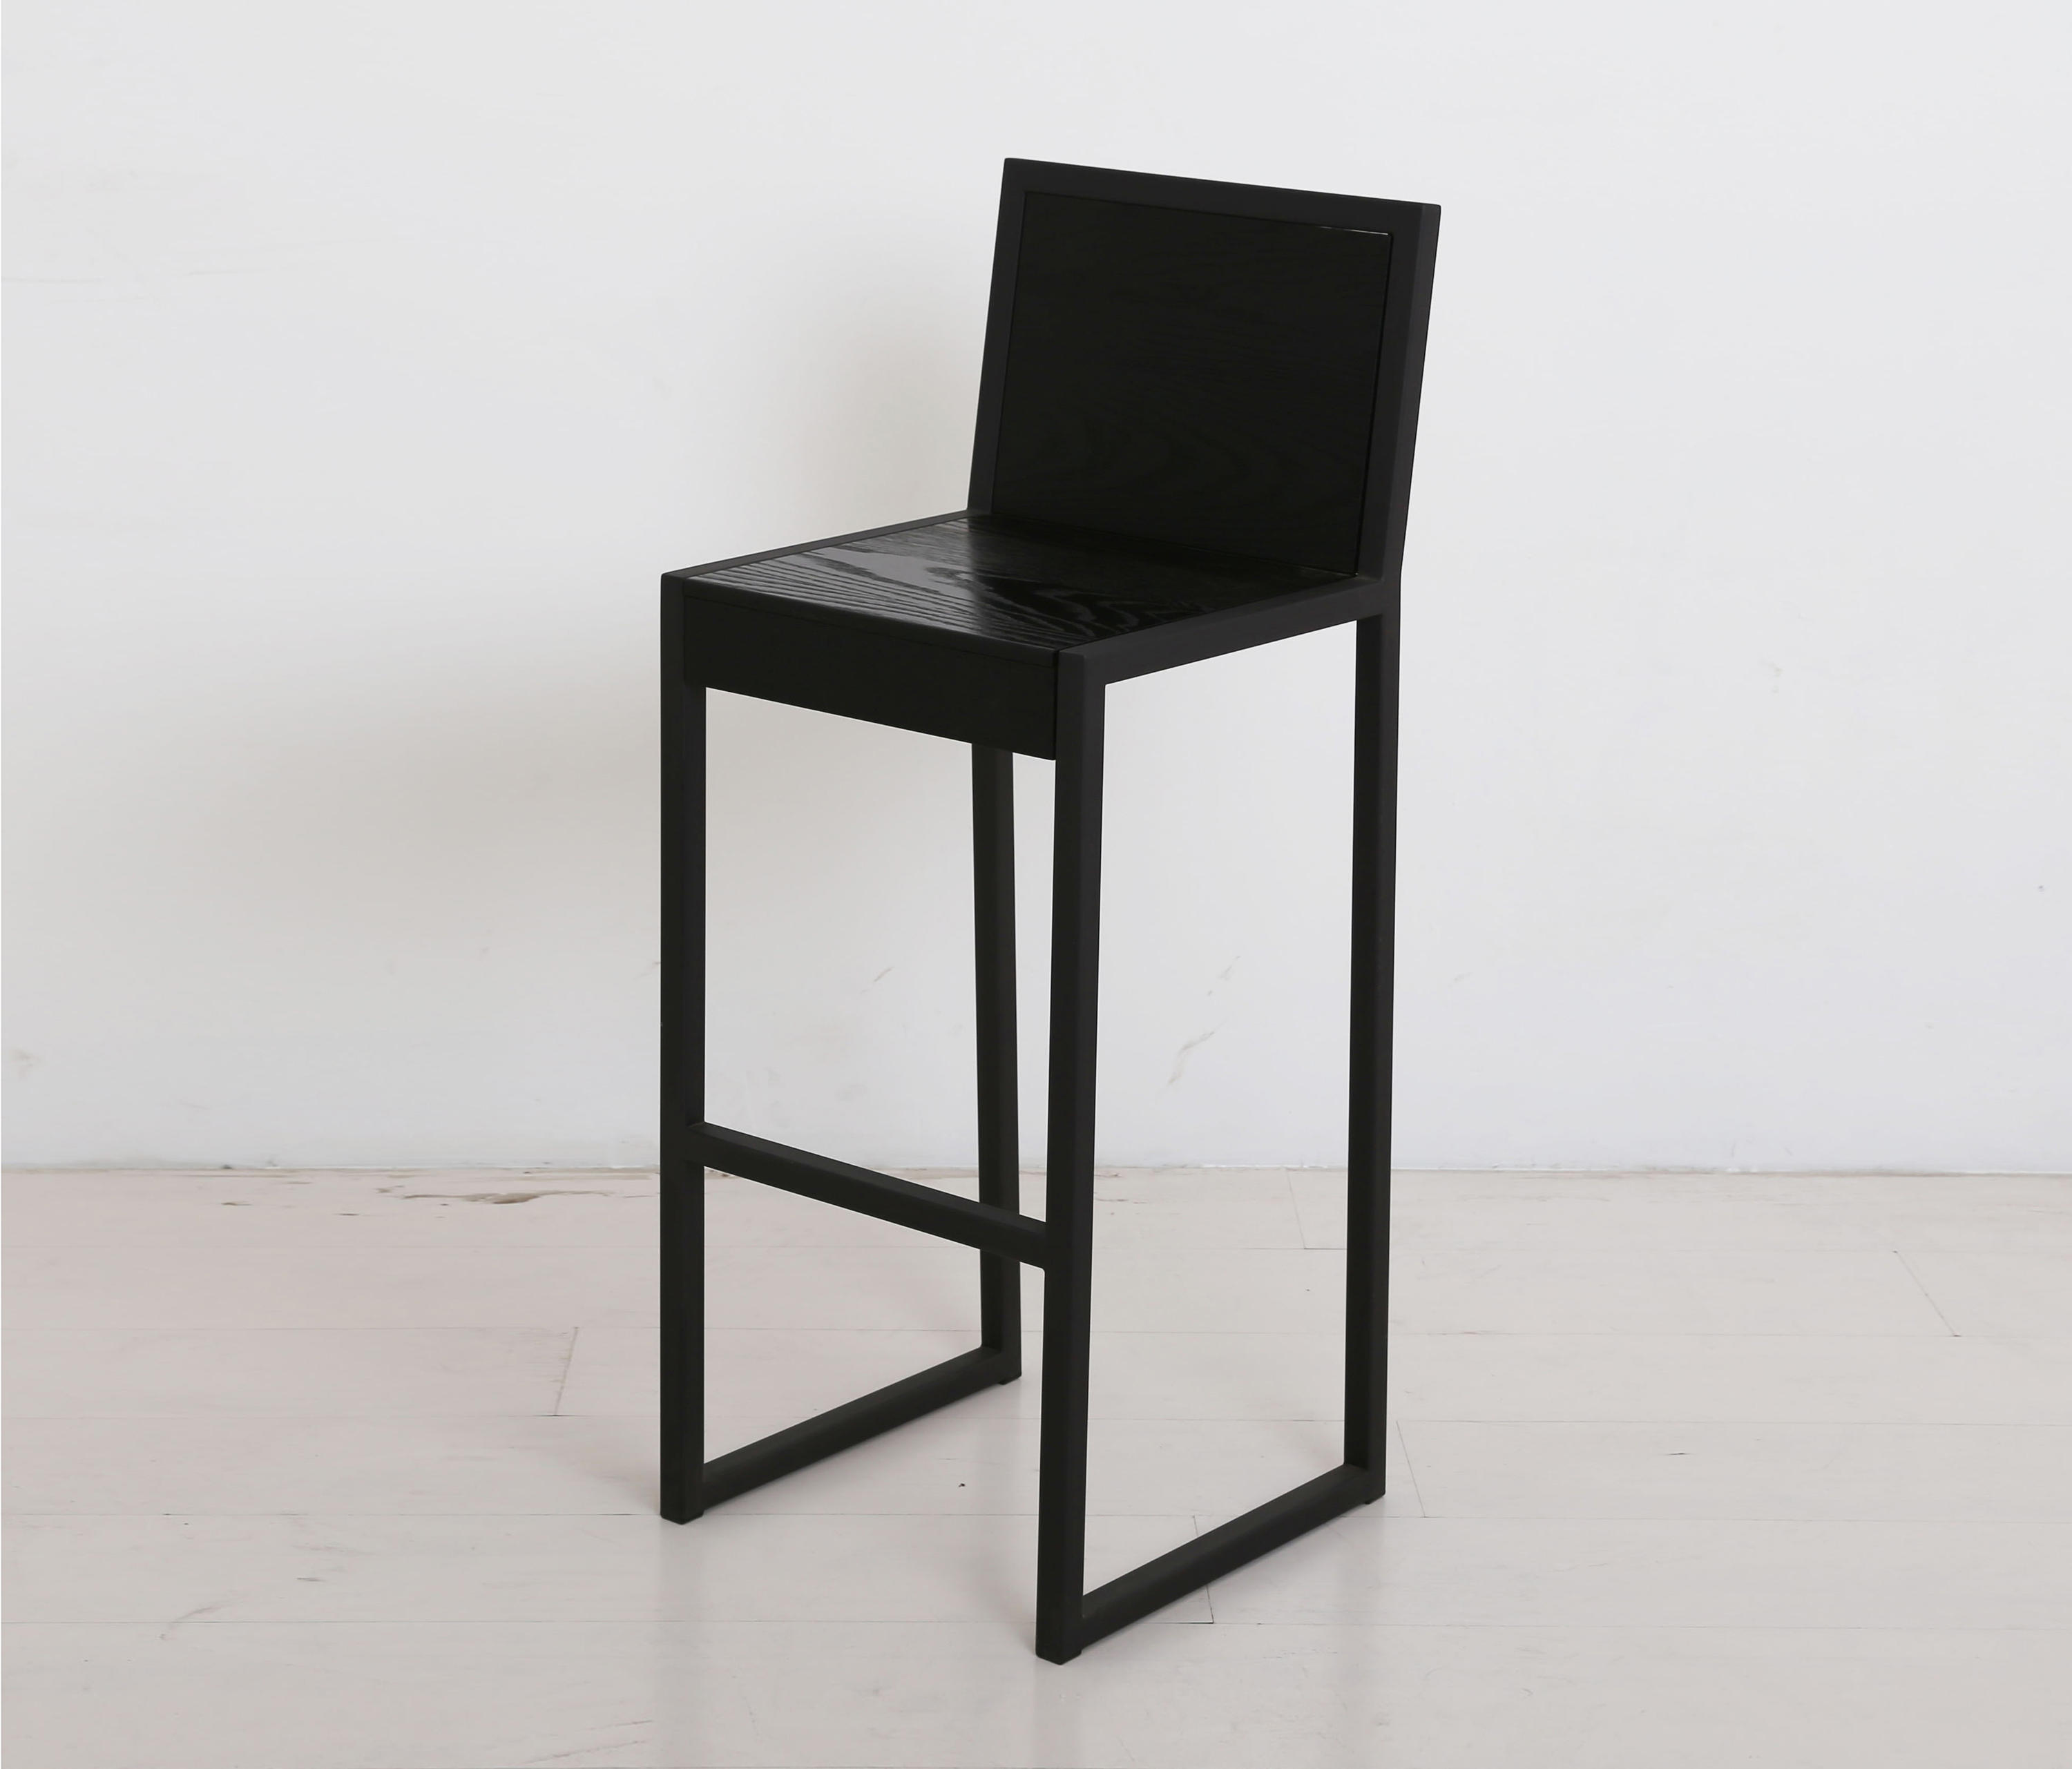 Marvelous Hulihee Barstool Designer Furniture Architonic Inzonedesignstudio Interior Chair Design Inzonedesignstudiocom